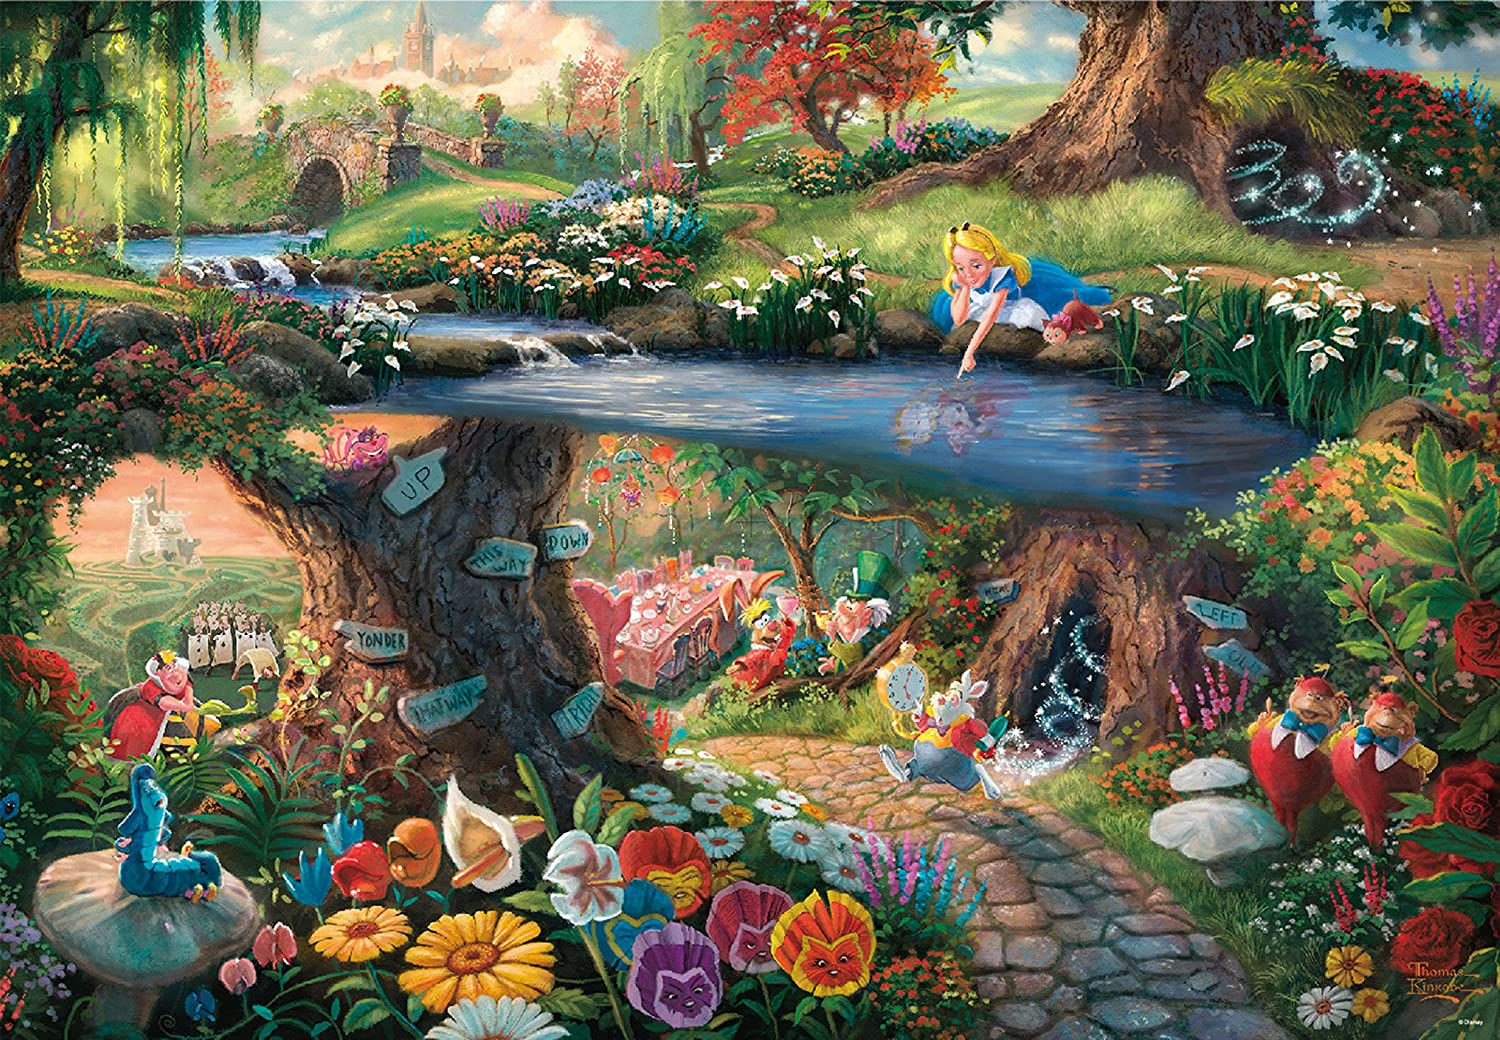 band 51 x 73.5 cm 1000 Pieces Jigsaw 5 Jigsaw puzzle Is your name